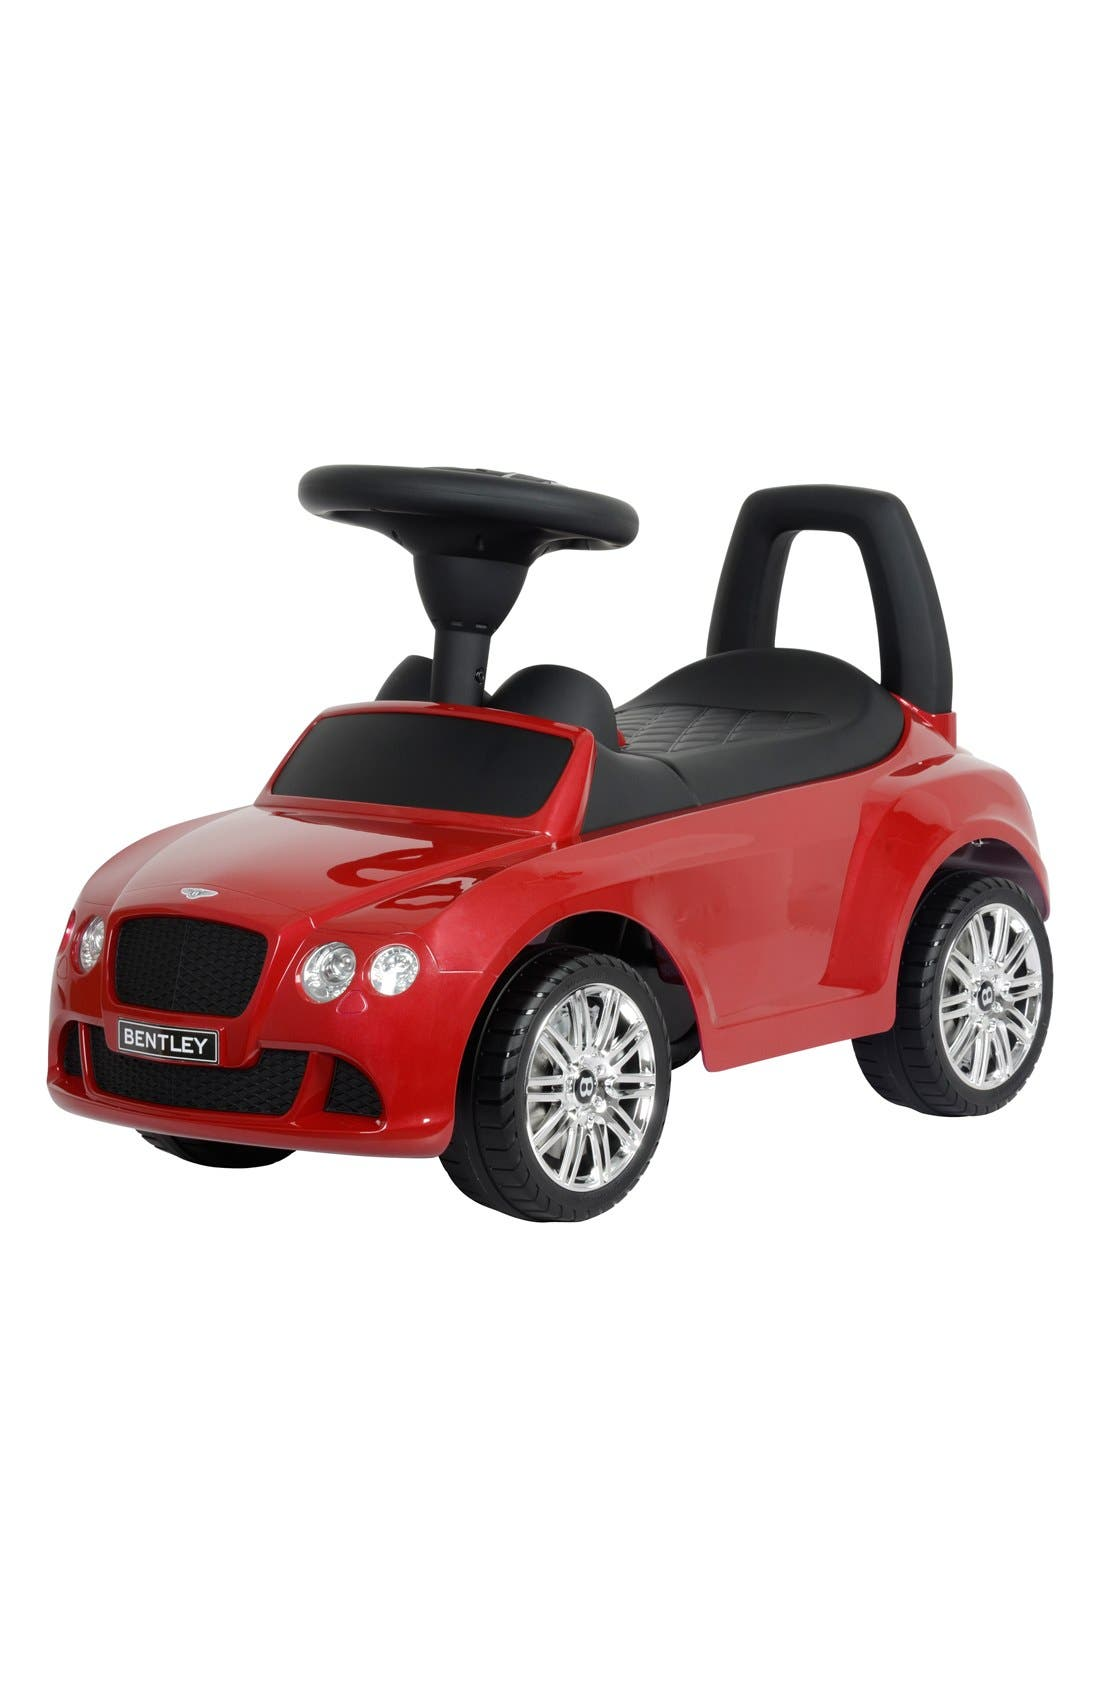 Best Ride on Cars 'Bentley' Ride-On Push Car